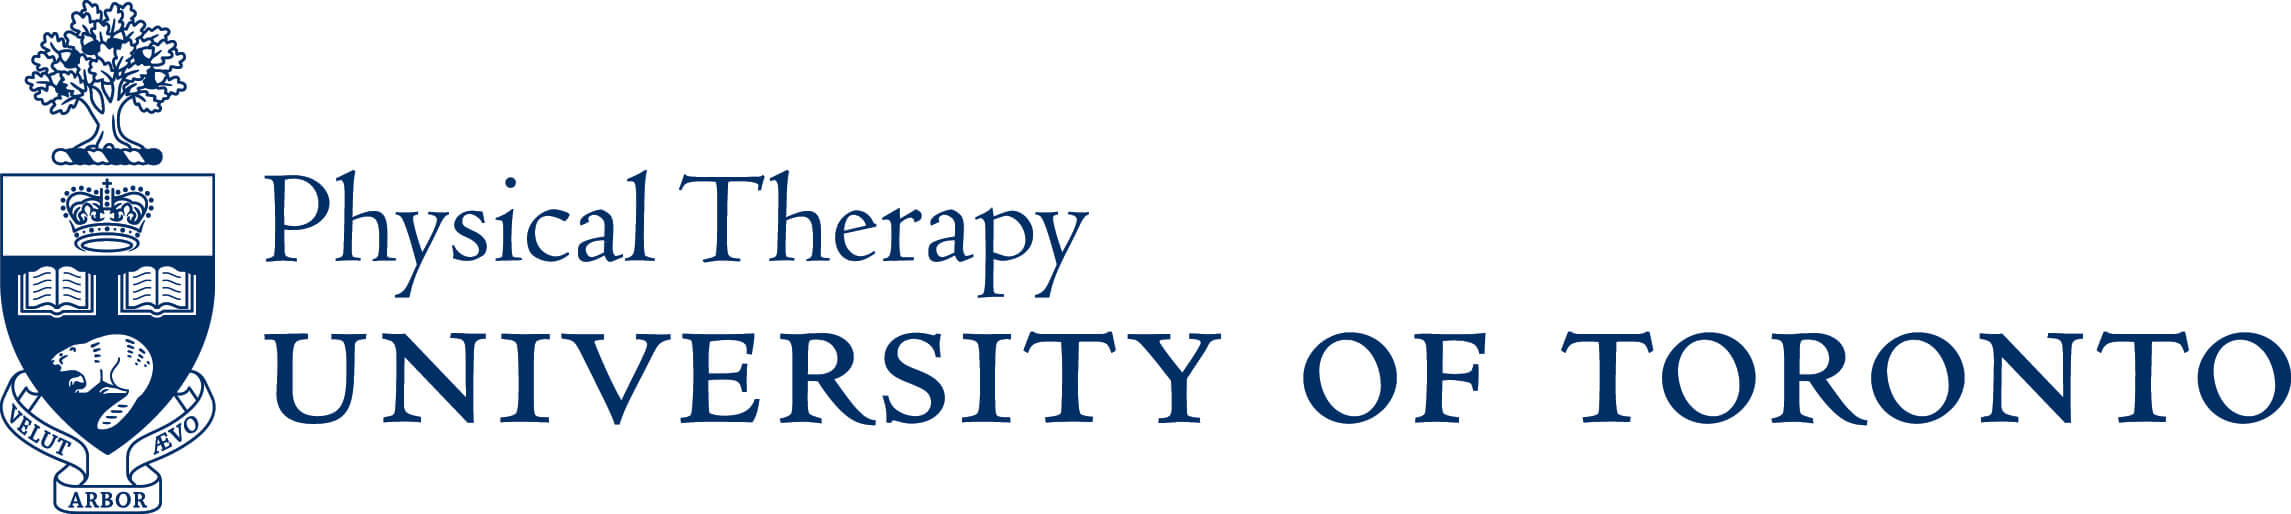 University of Toronto Physical Therapy logo